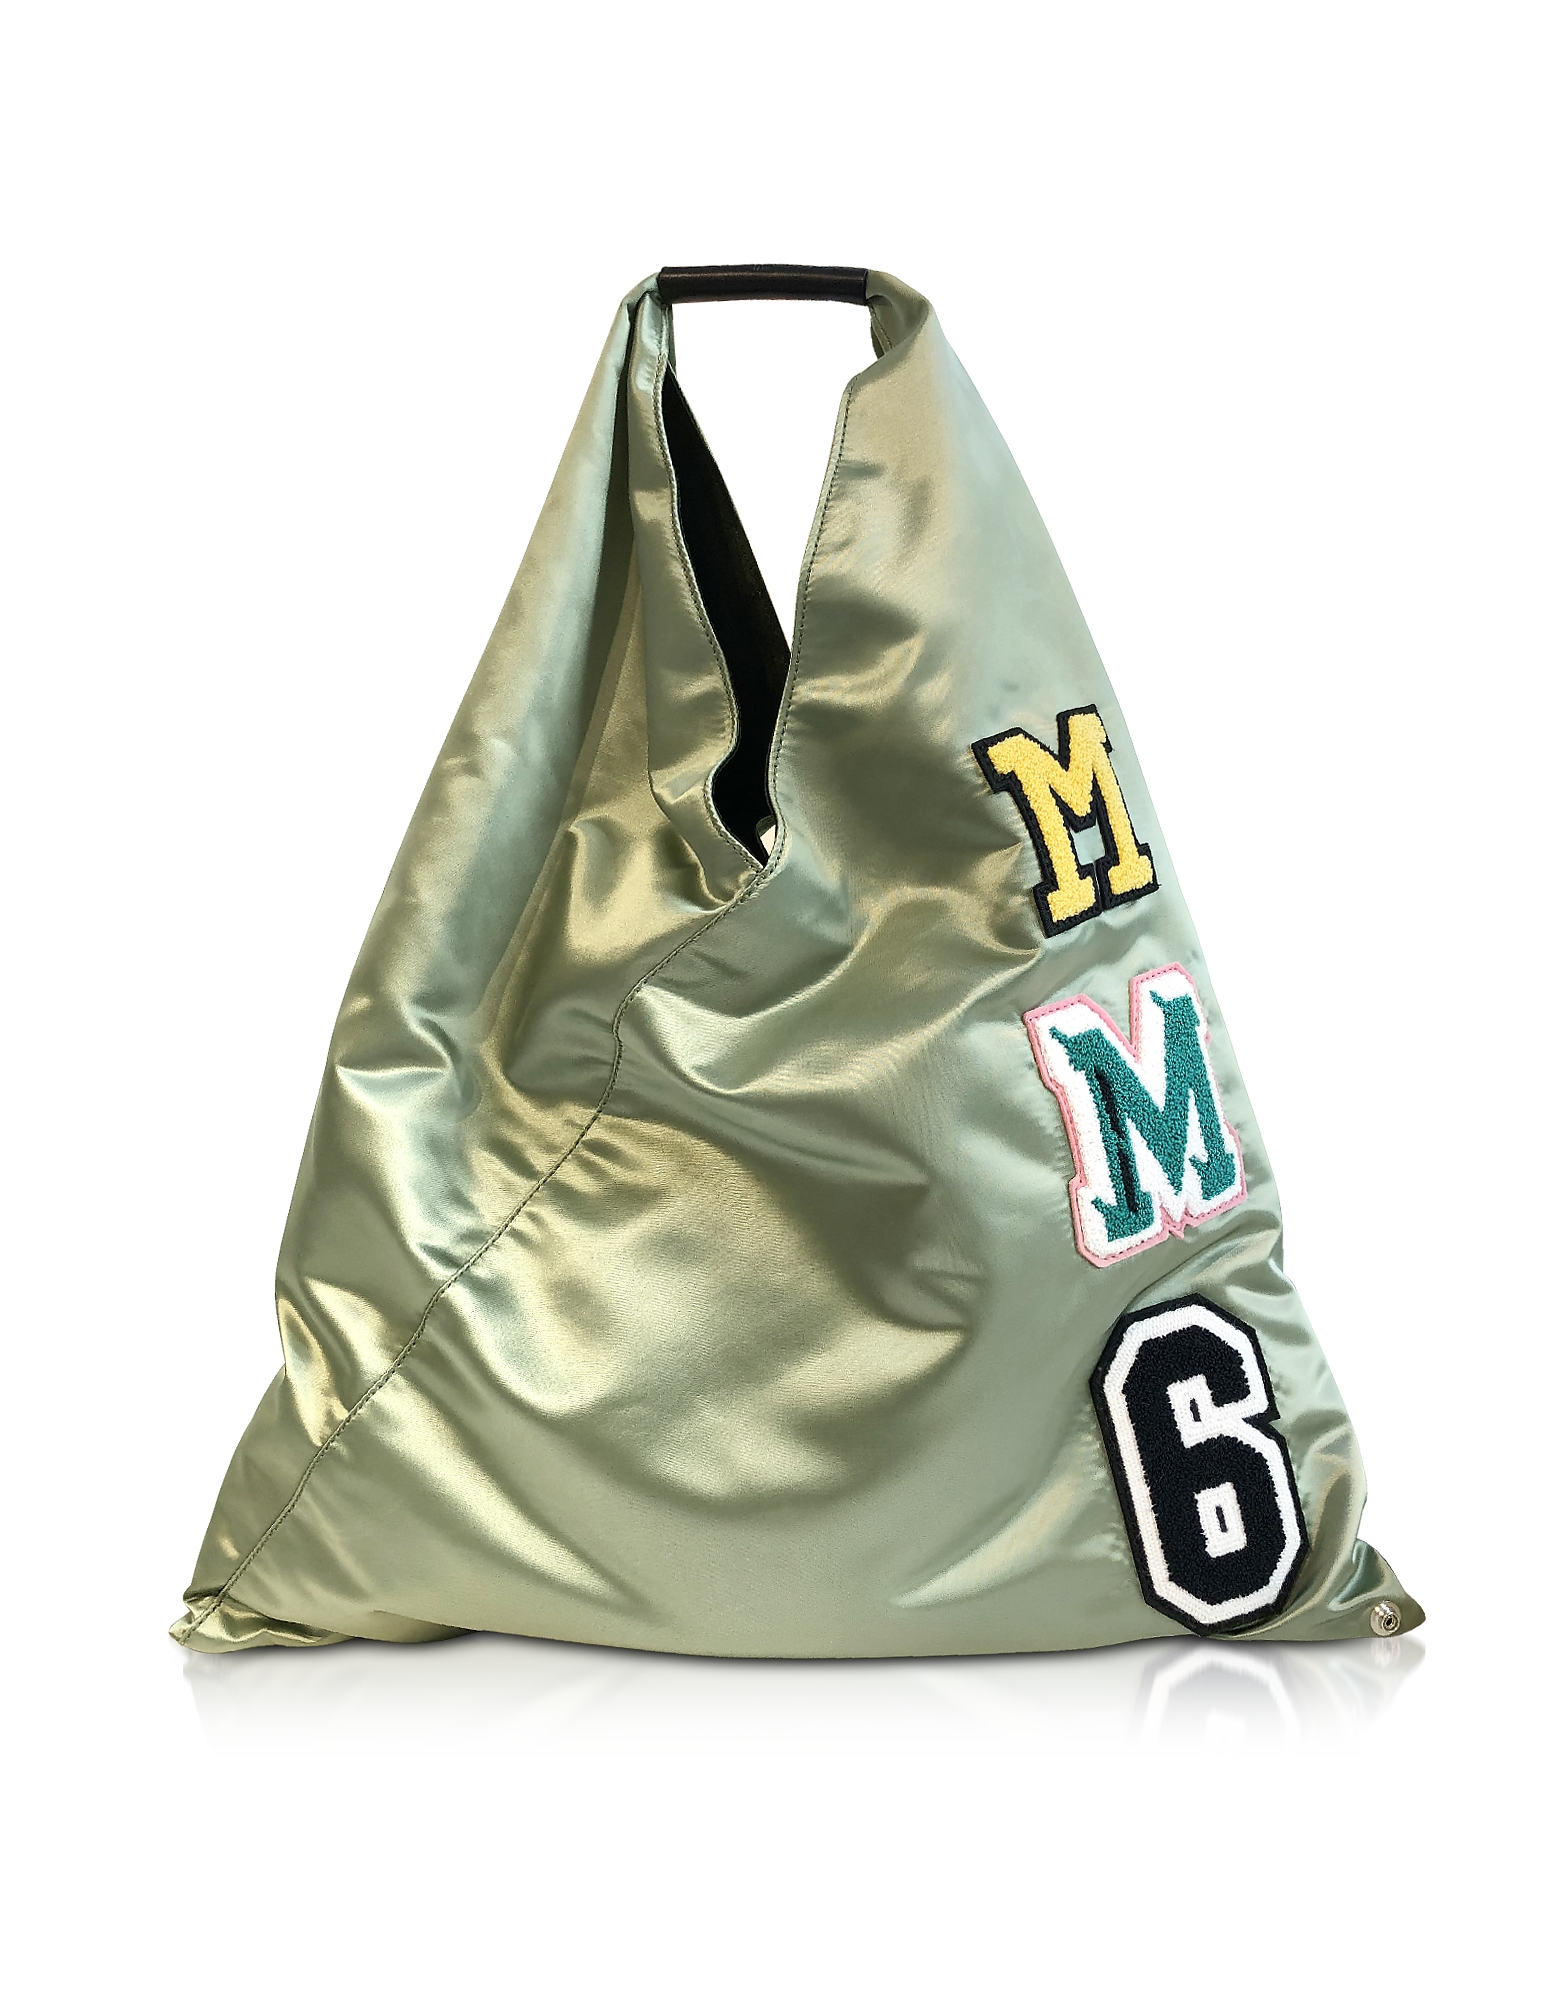 Mm6 Maison Margiela SAGE GREEN NYLON JAPANESE TOTE BAG